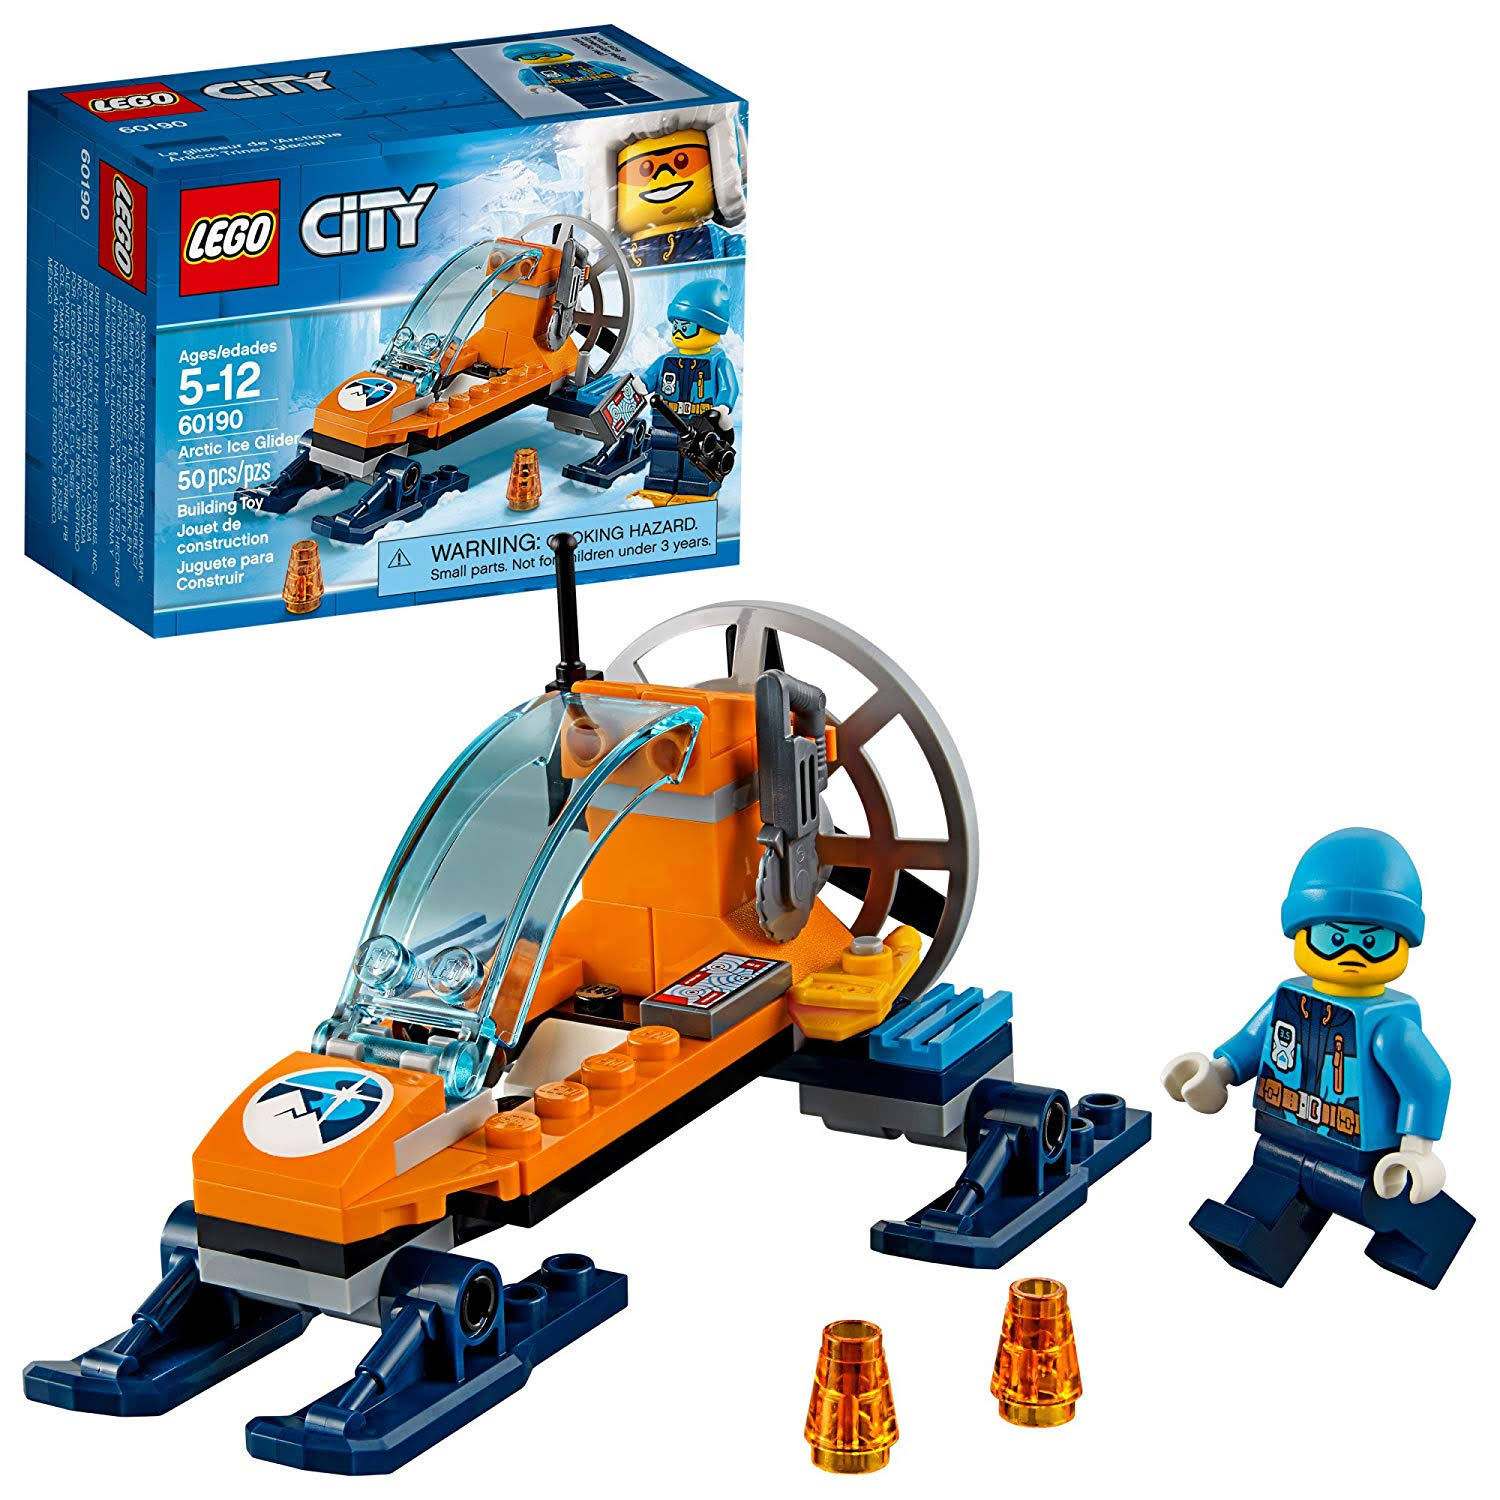 Lego Building Toy, Arctic Ice Glider, City